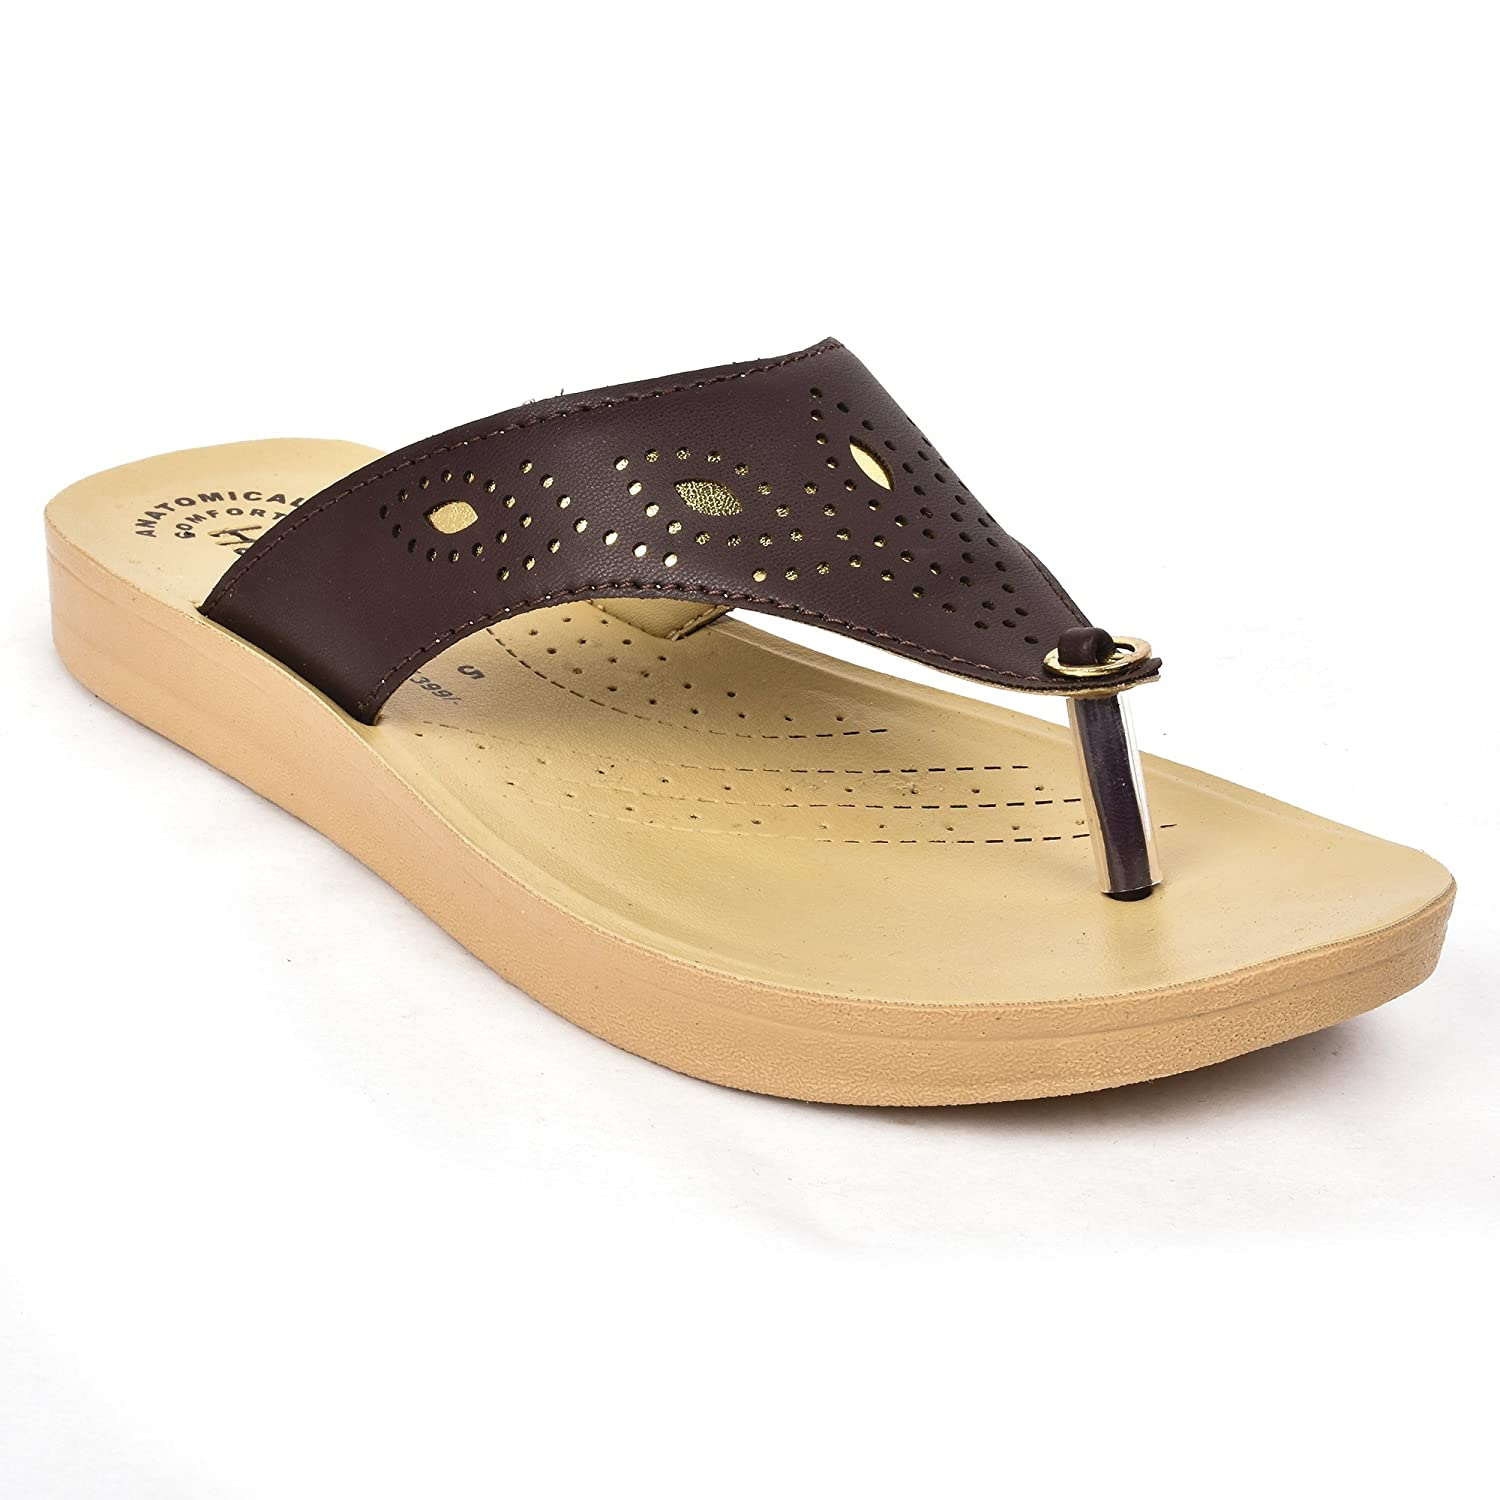 Buy Action Shoes Women's Brown Slipper